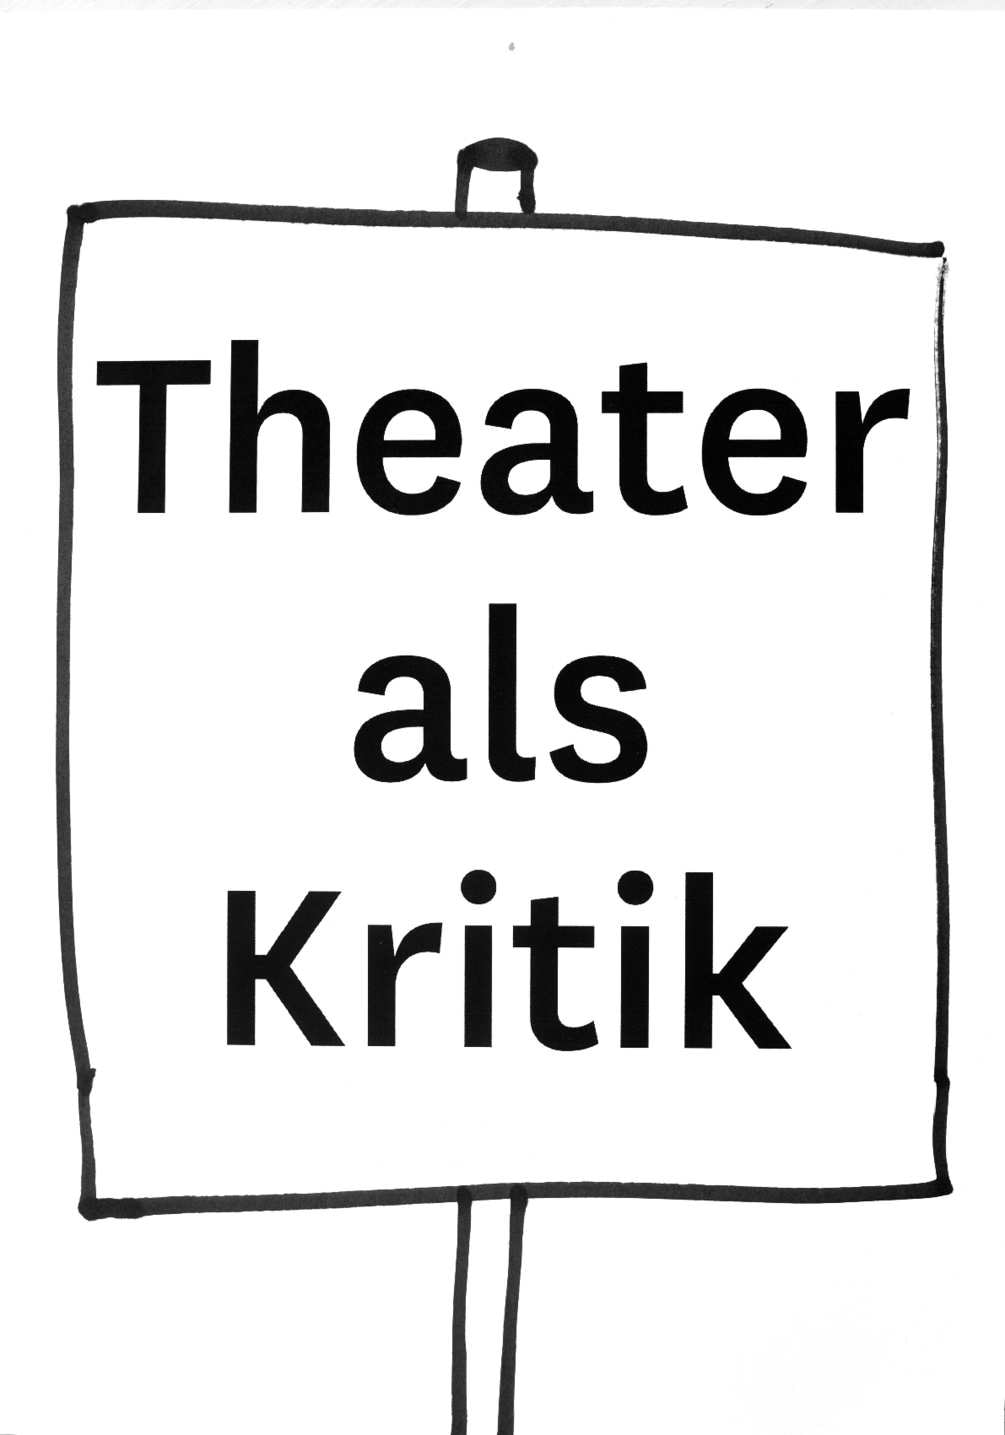 theater-as-critique-slip-31-1005x1435px